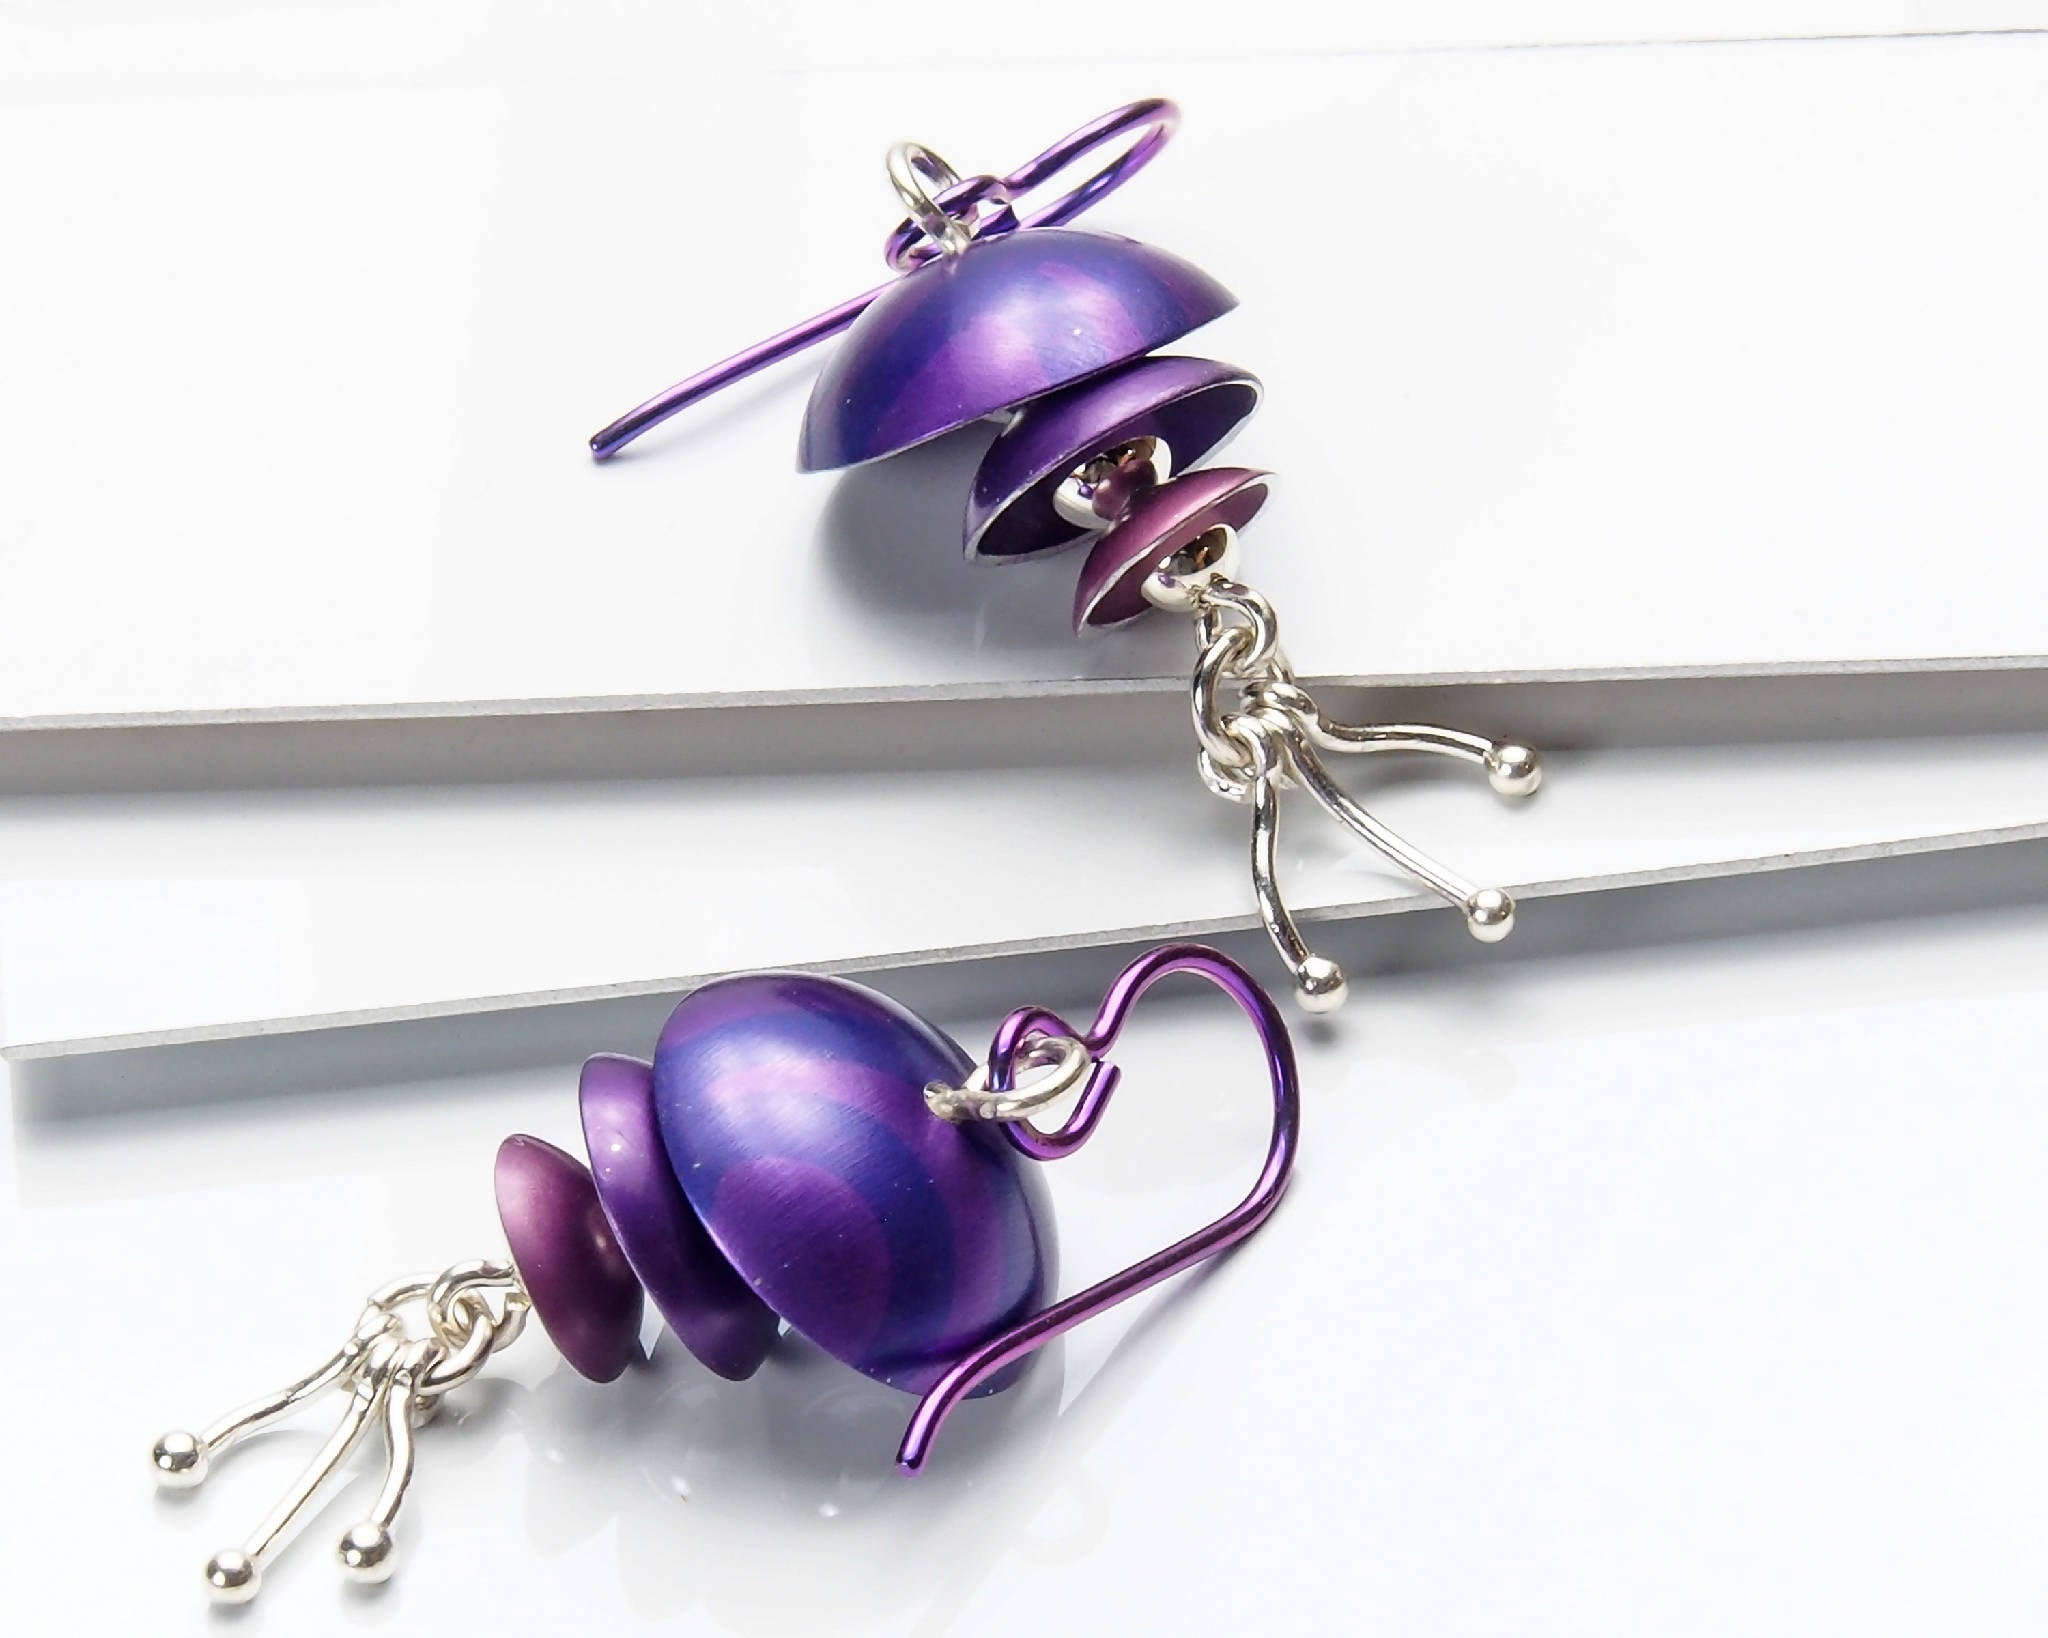 Purple Anodized Aluminum and Sterling Silver Earrings